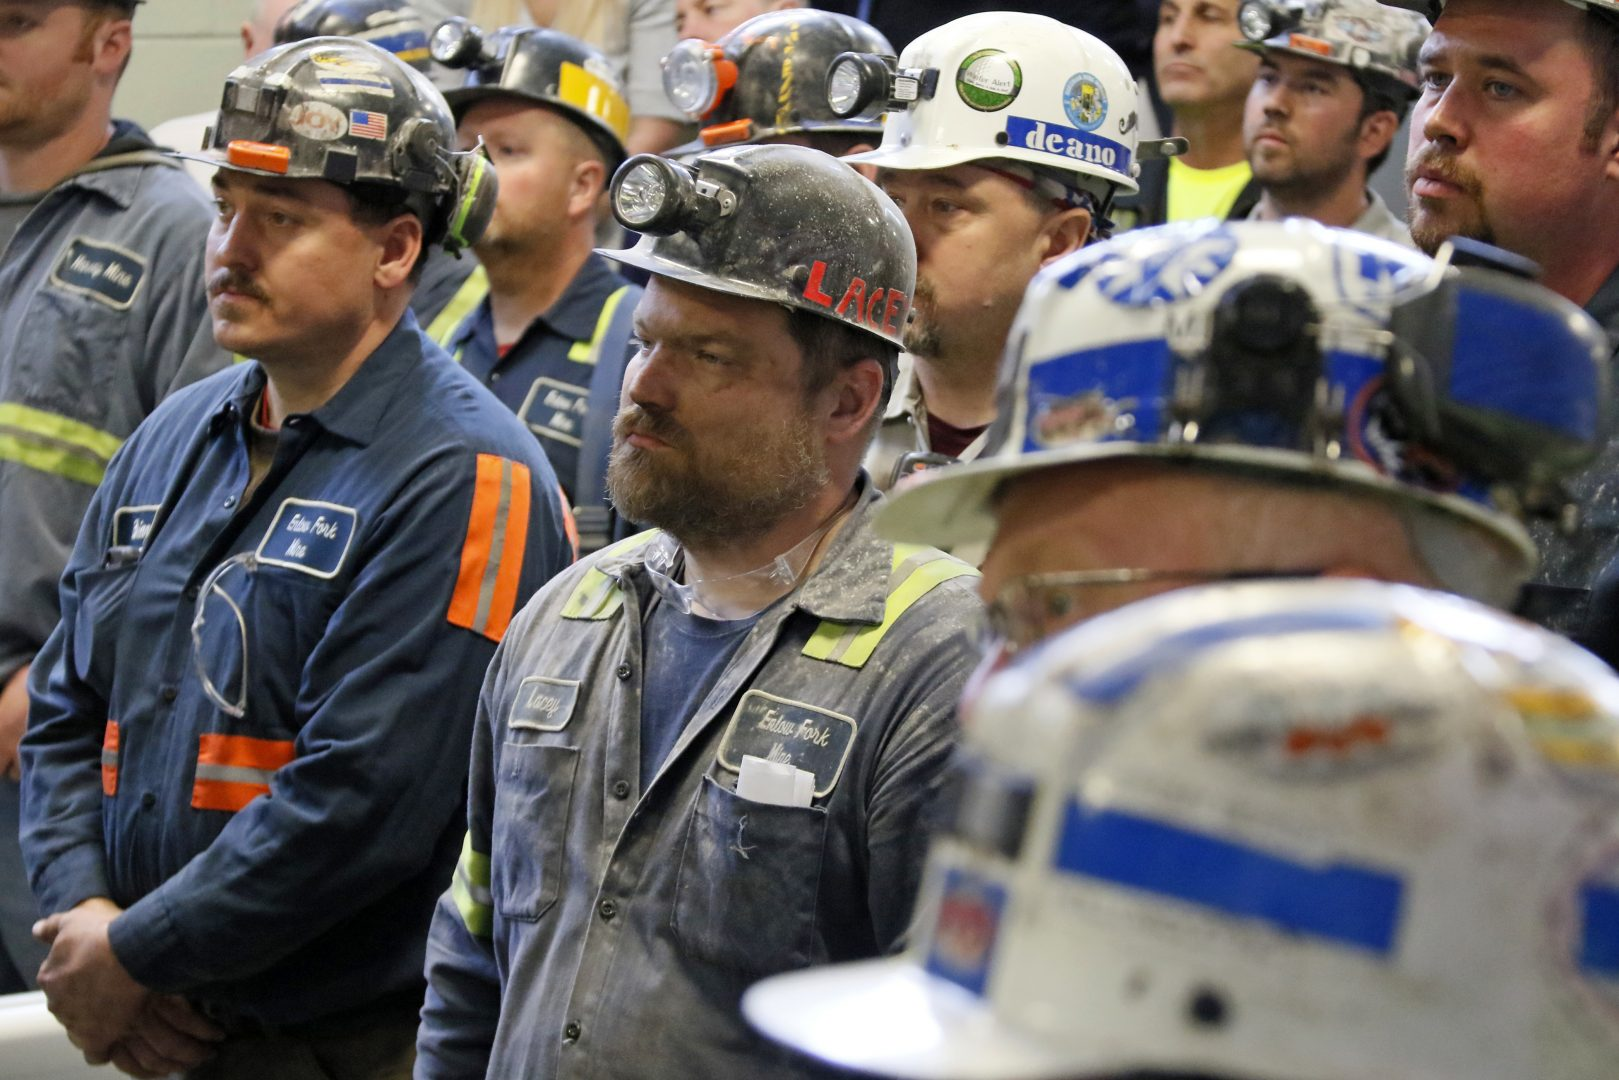 'My friends were lied to': Will coal miners stand by Trump as jobs disappear? | StateImpact Pennsylvania